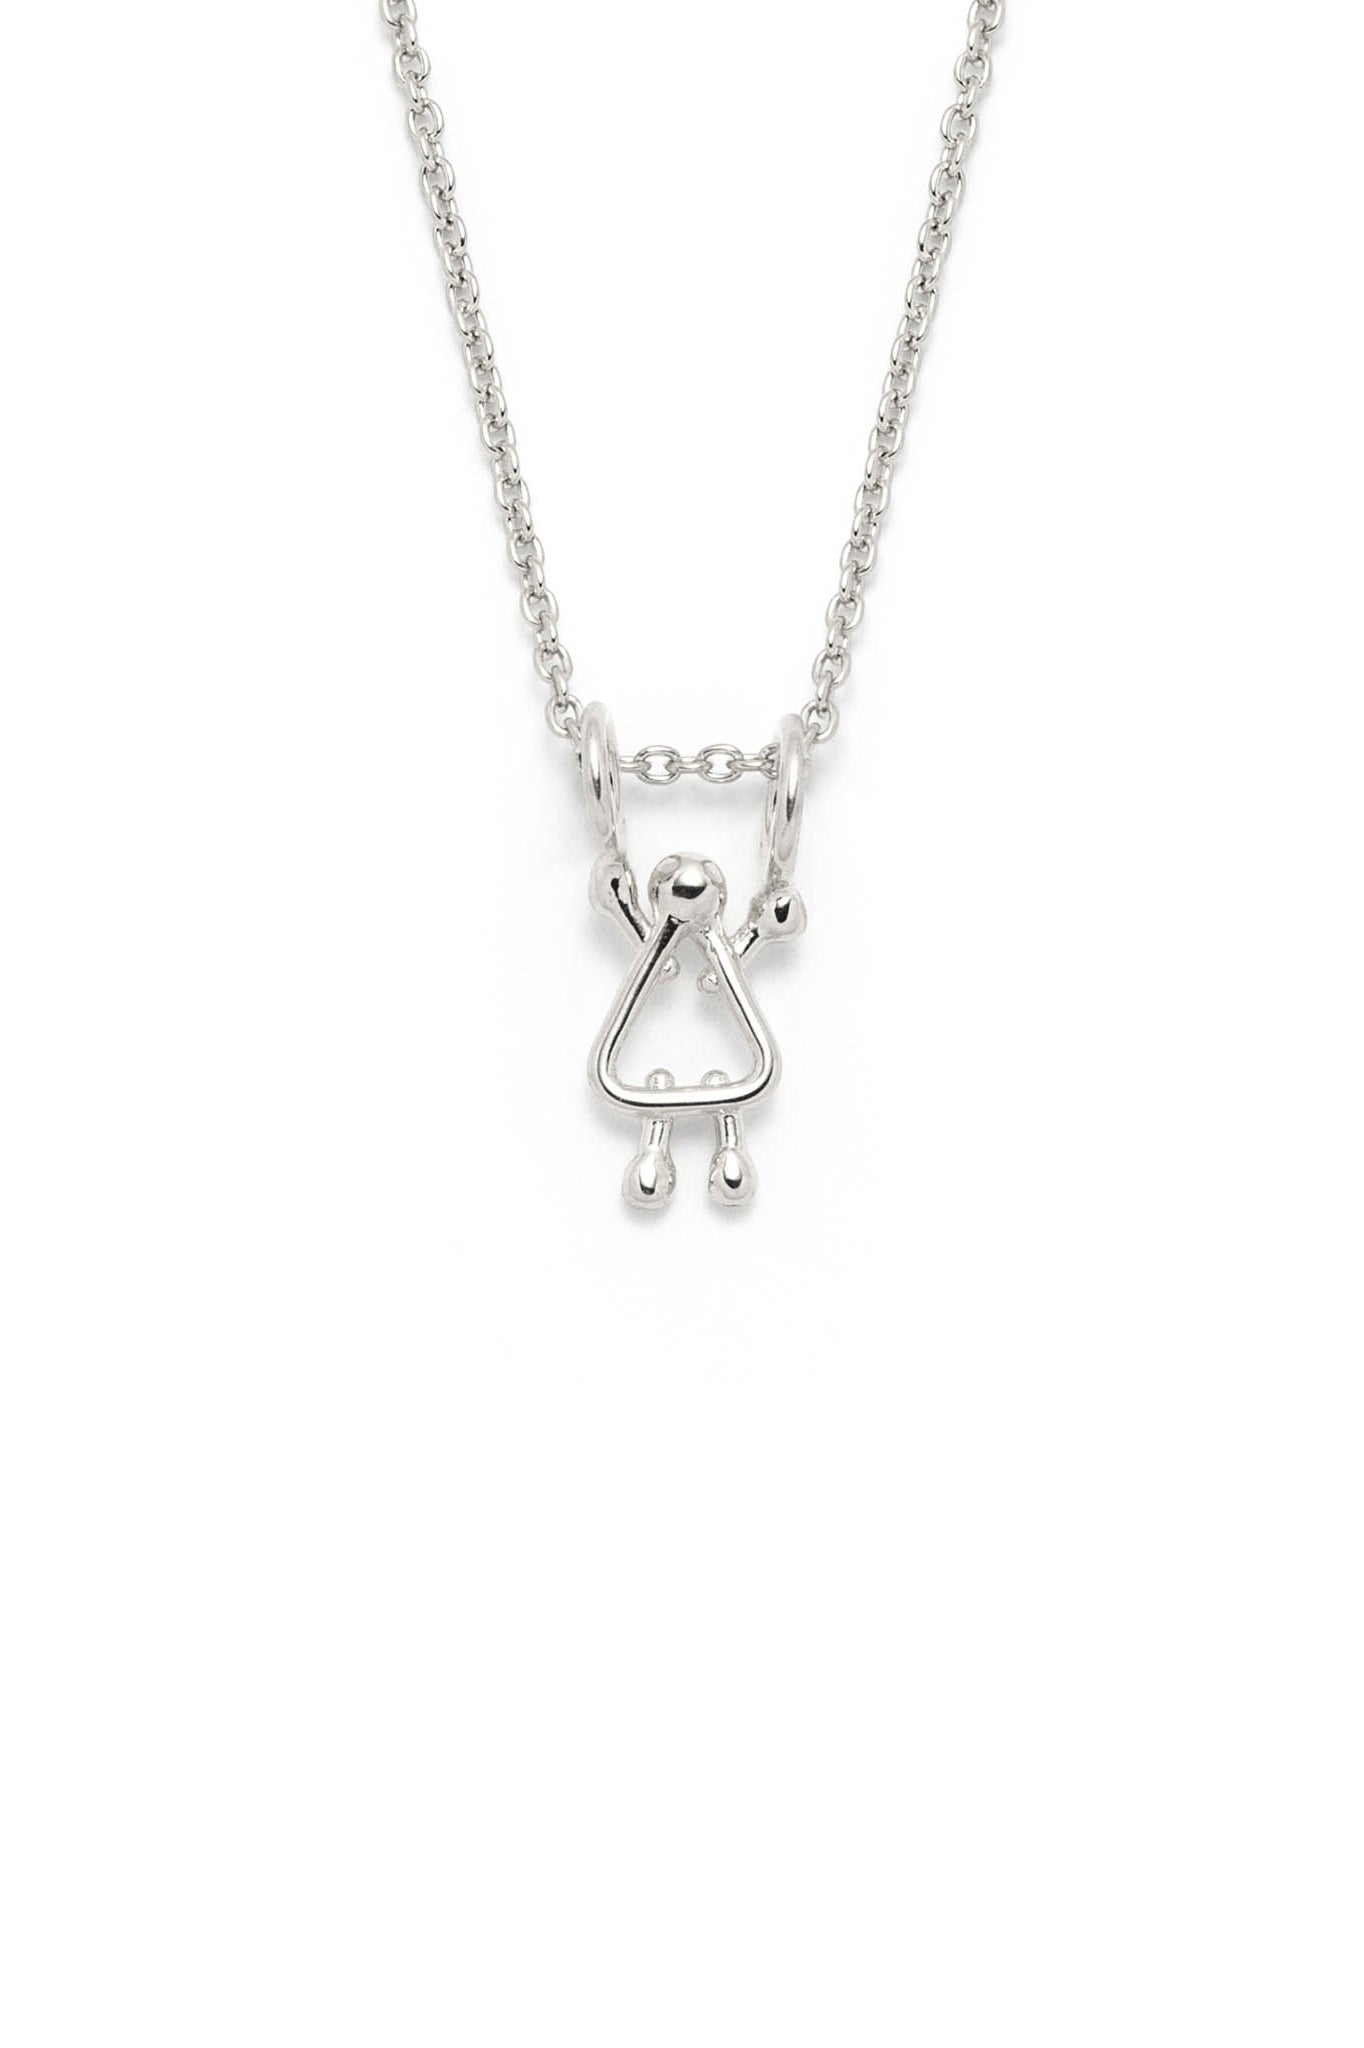 Girl charm on a chain by Lidia in sterling silver